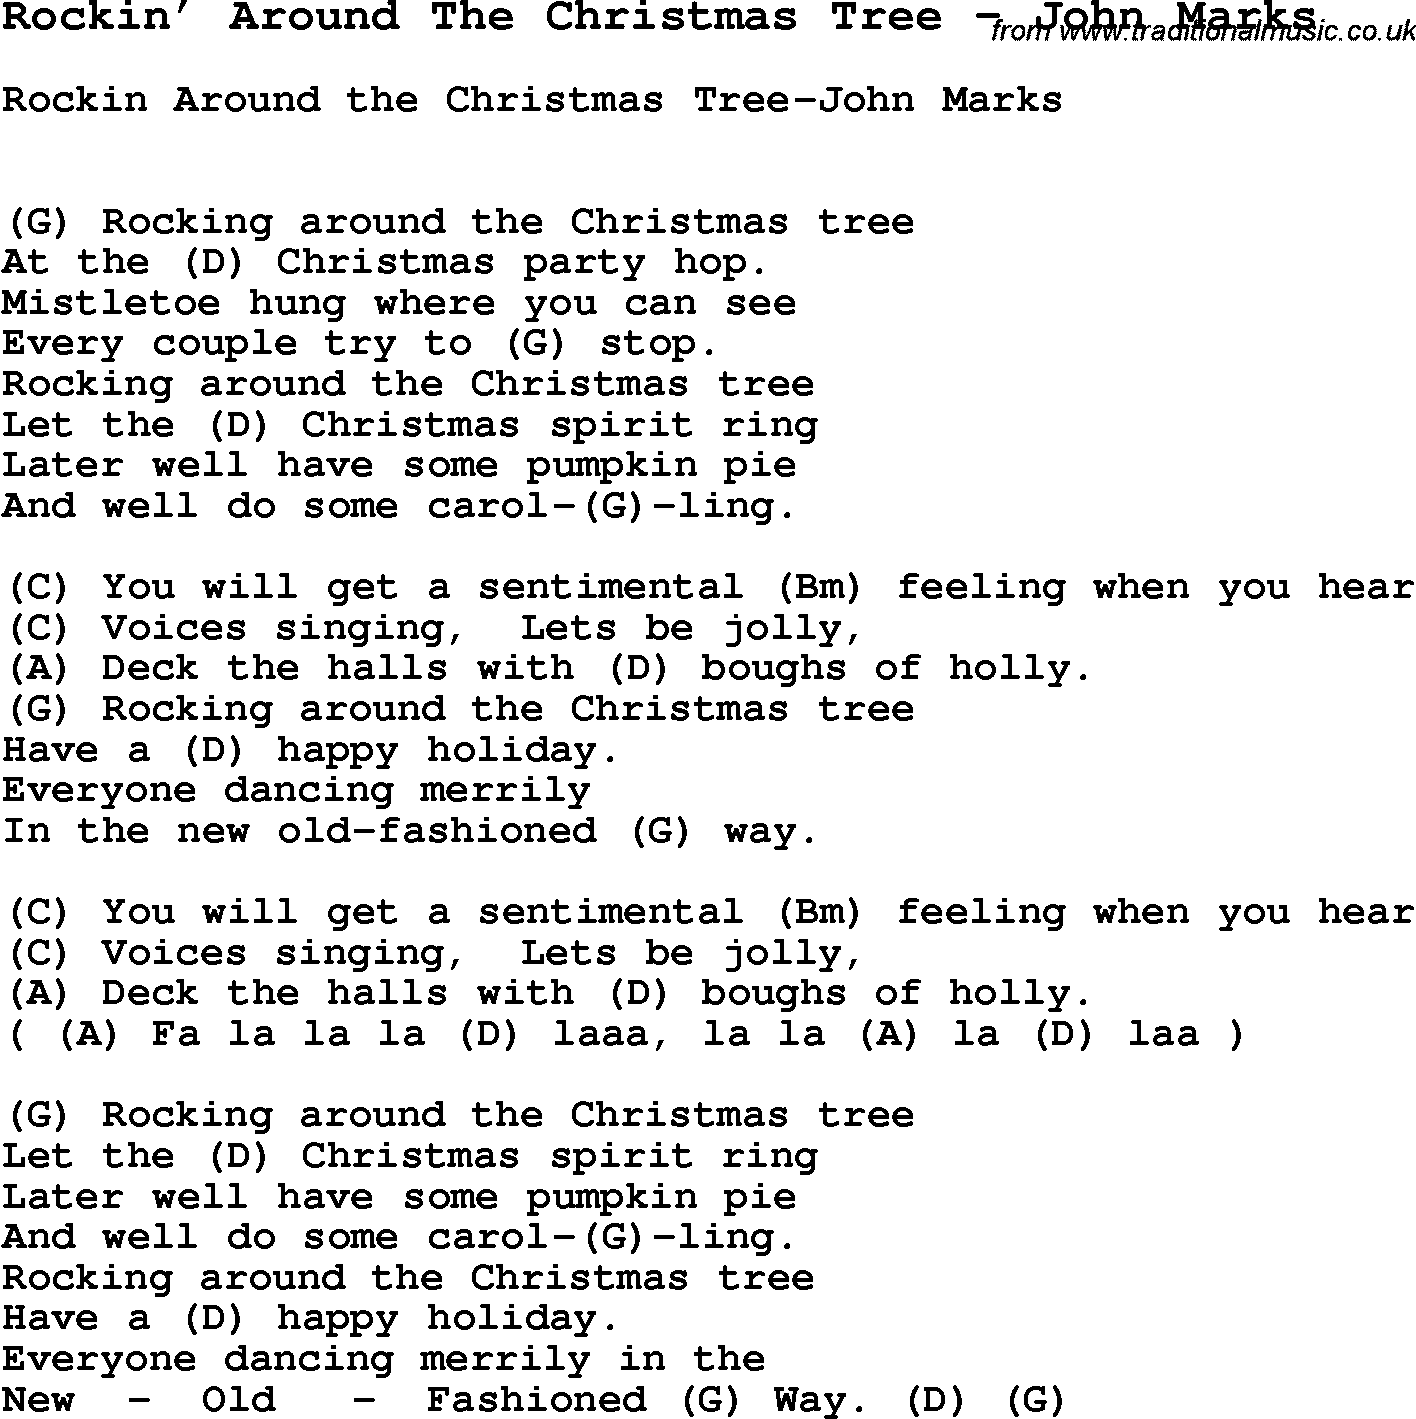 Song rockin around the christmas tree by john marks with lyrics guitar songs hexwebz Choice Image